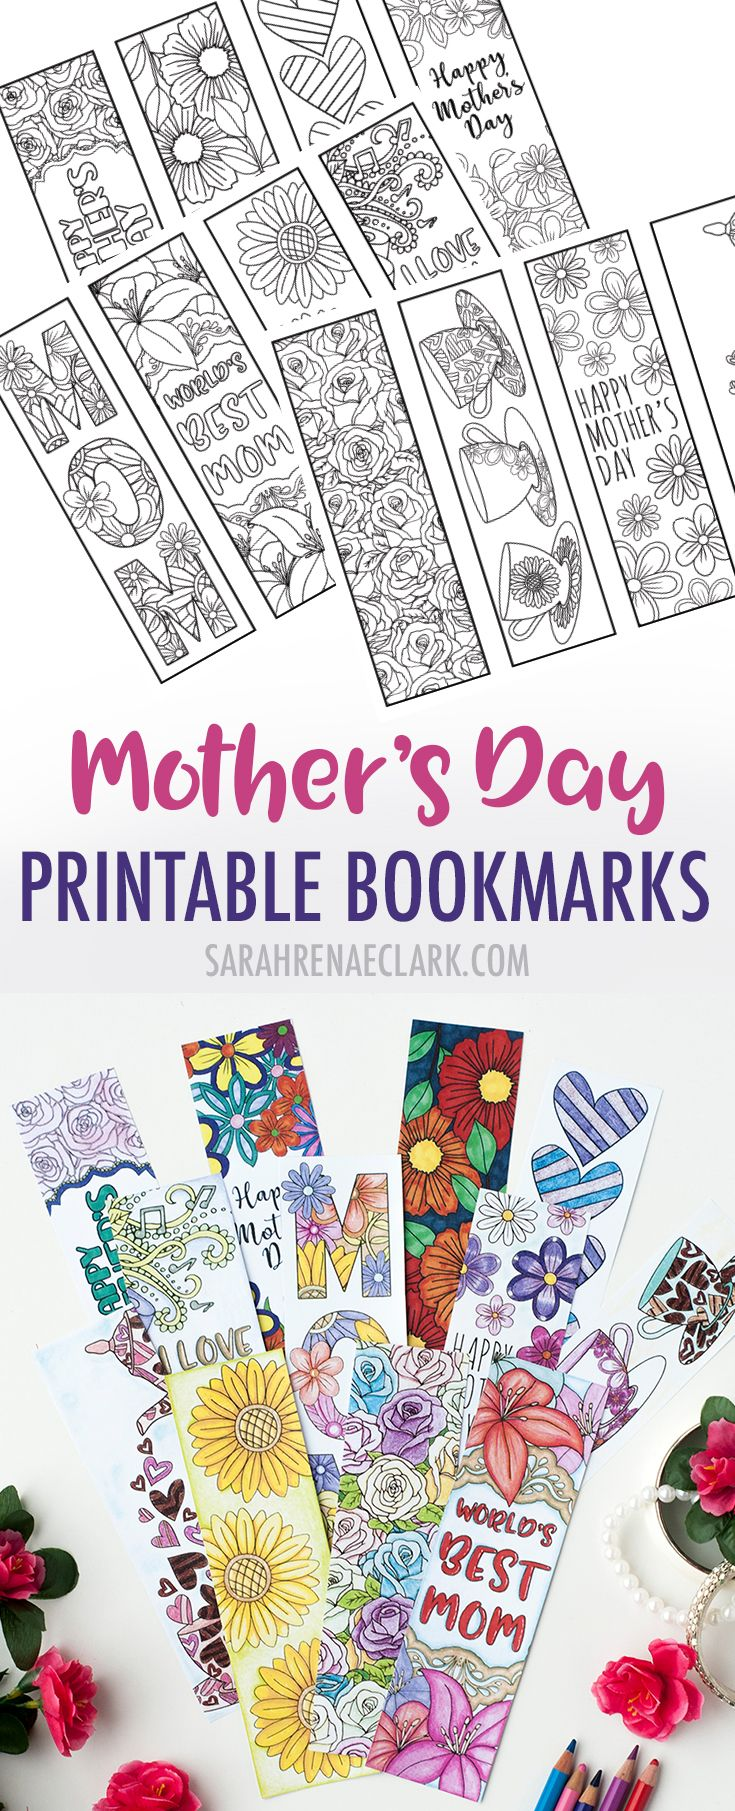 Motherus day coloring bookmarks pack more printable bookmarks